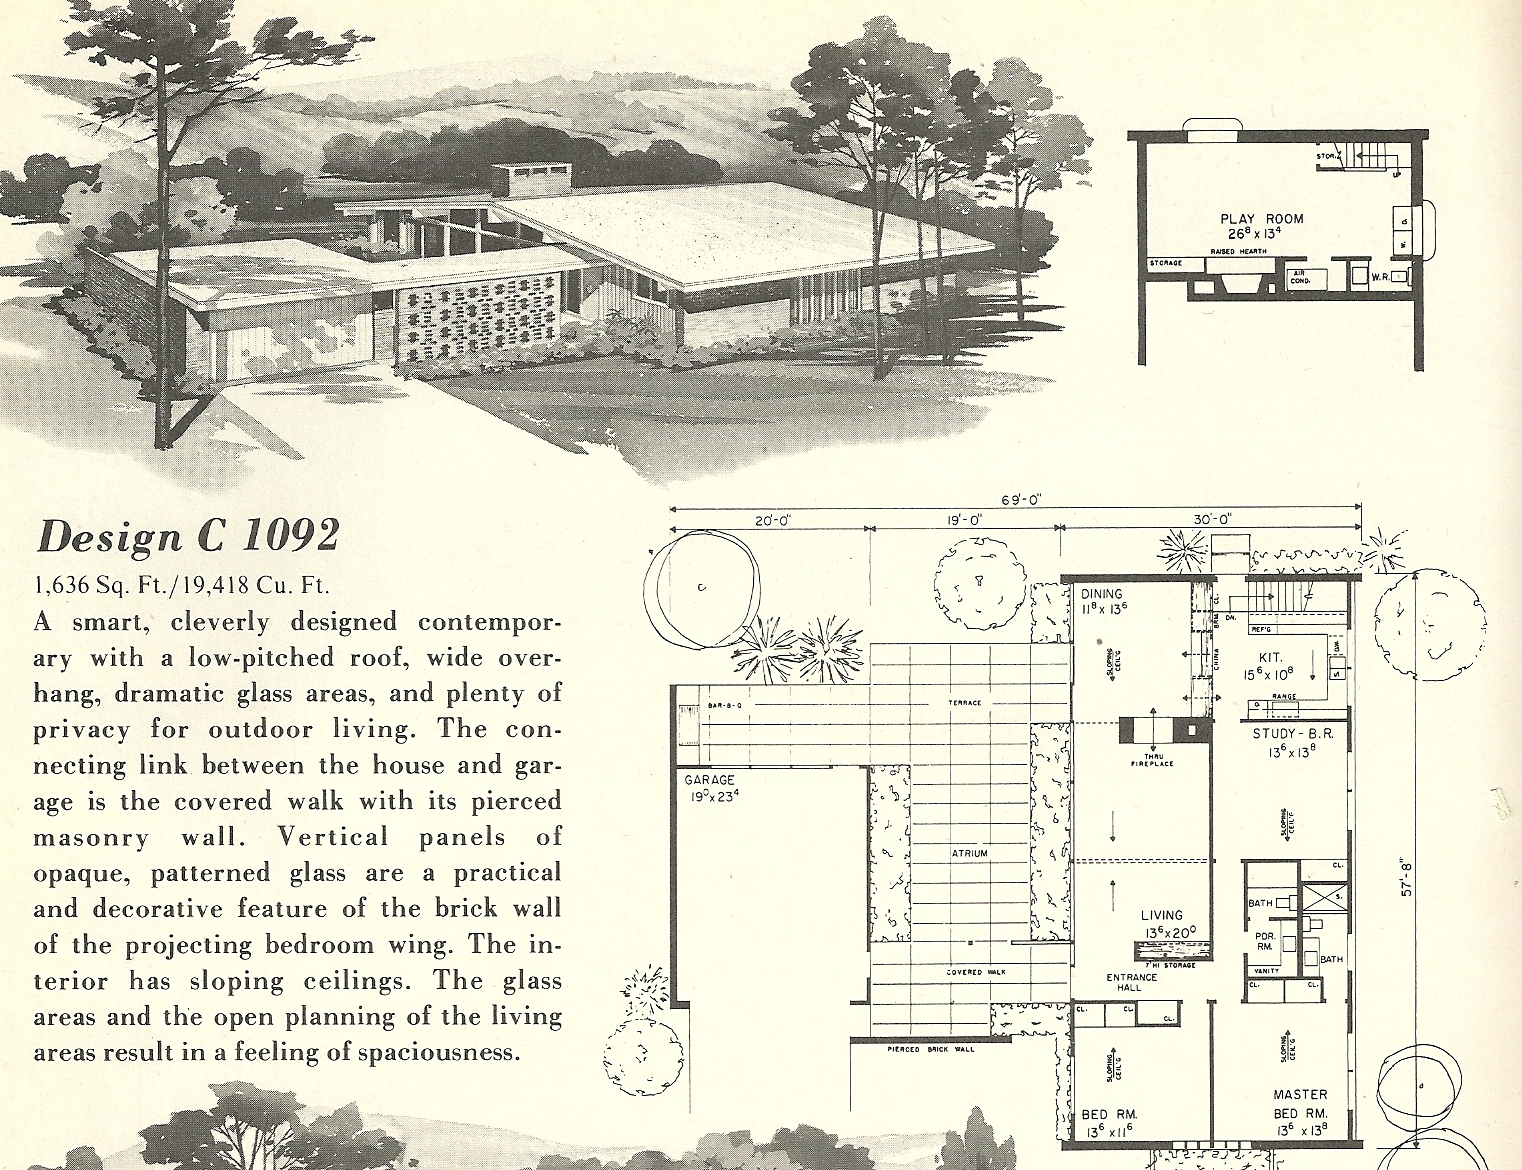 Vintage house plans 1092 for Mid century modern plans